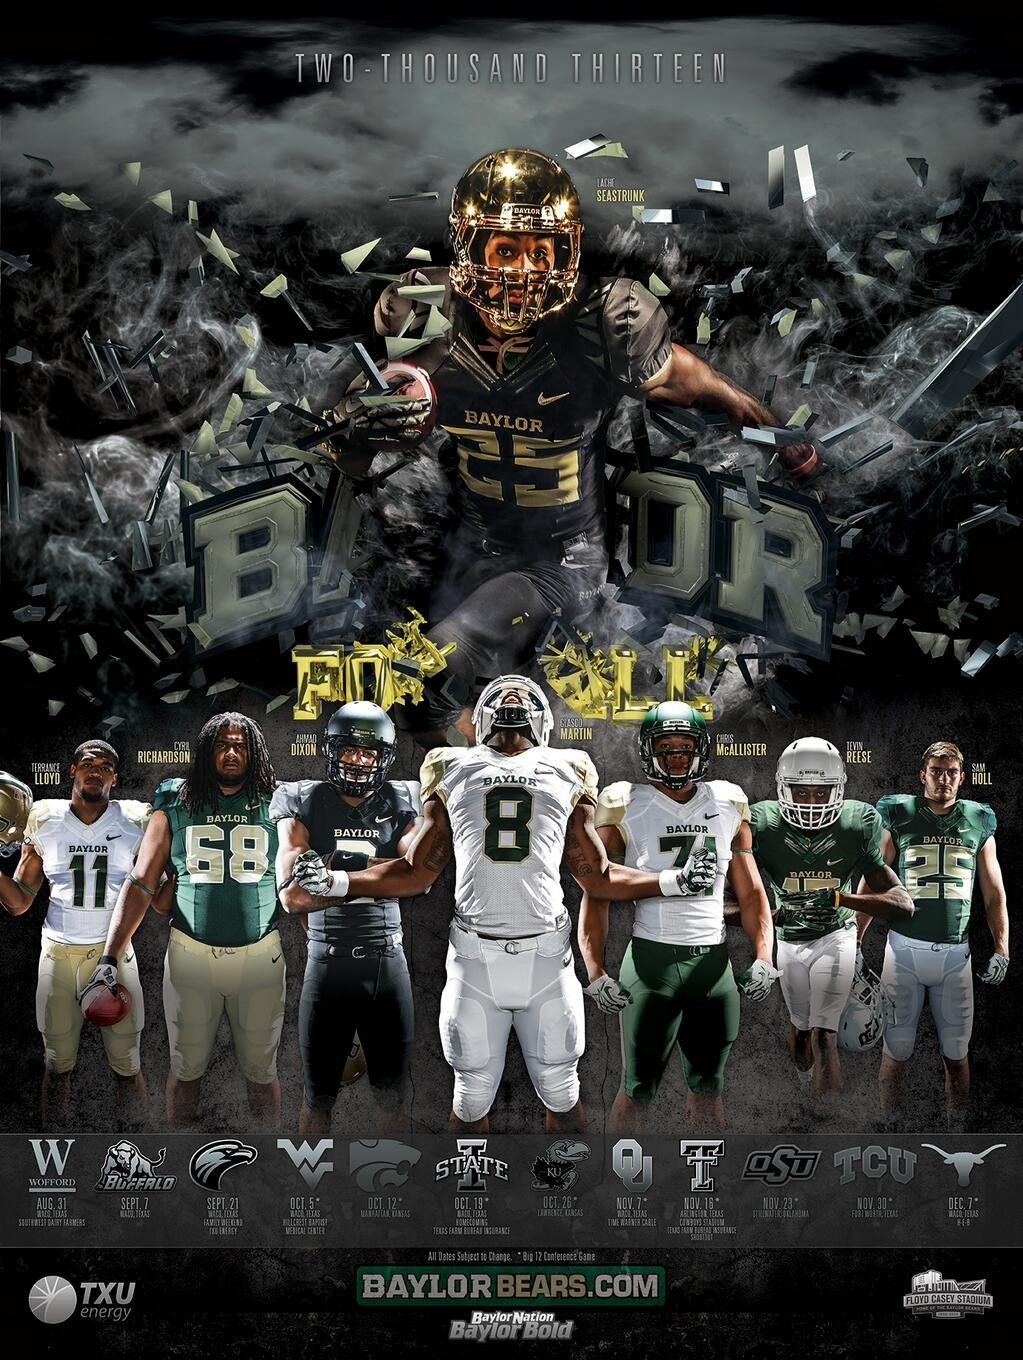 Baylor Football on Football program, Team photography